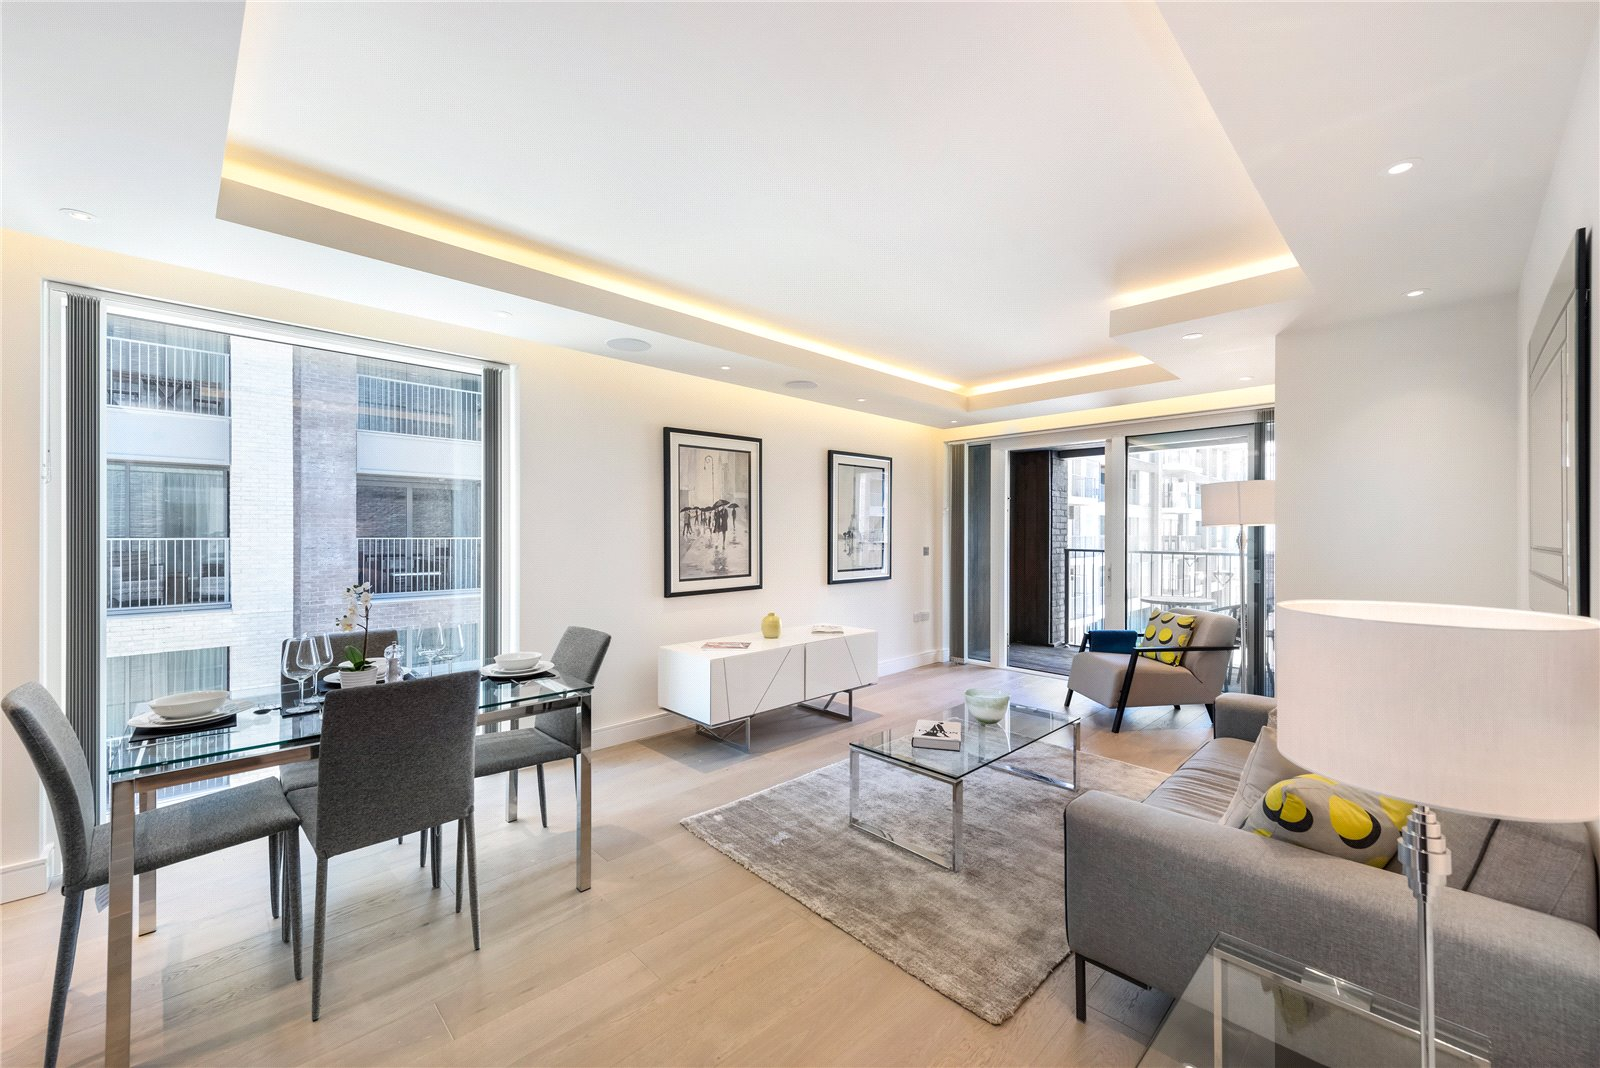 Apartment for Sale at Thurstan Street, London, SW6 Thurstan Street, London, SW6